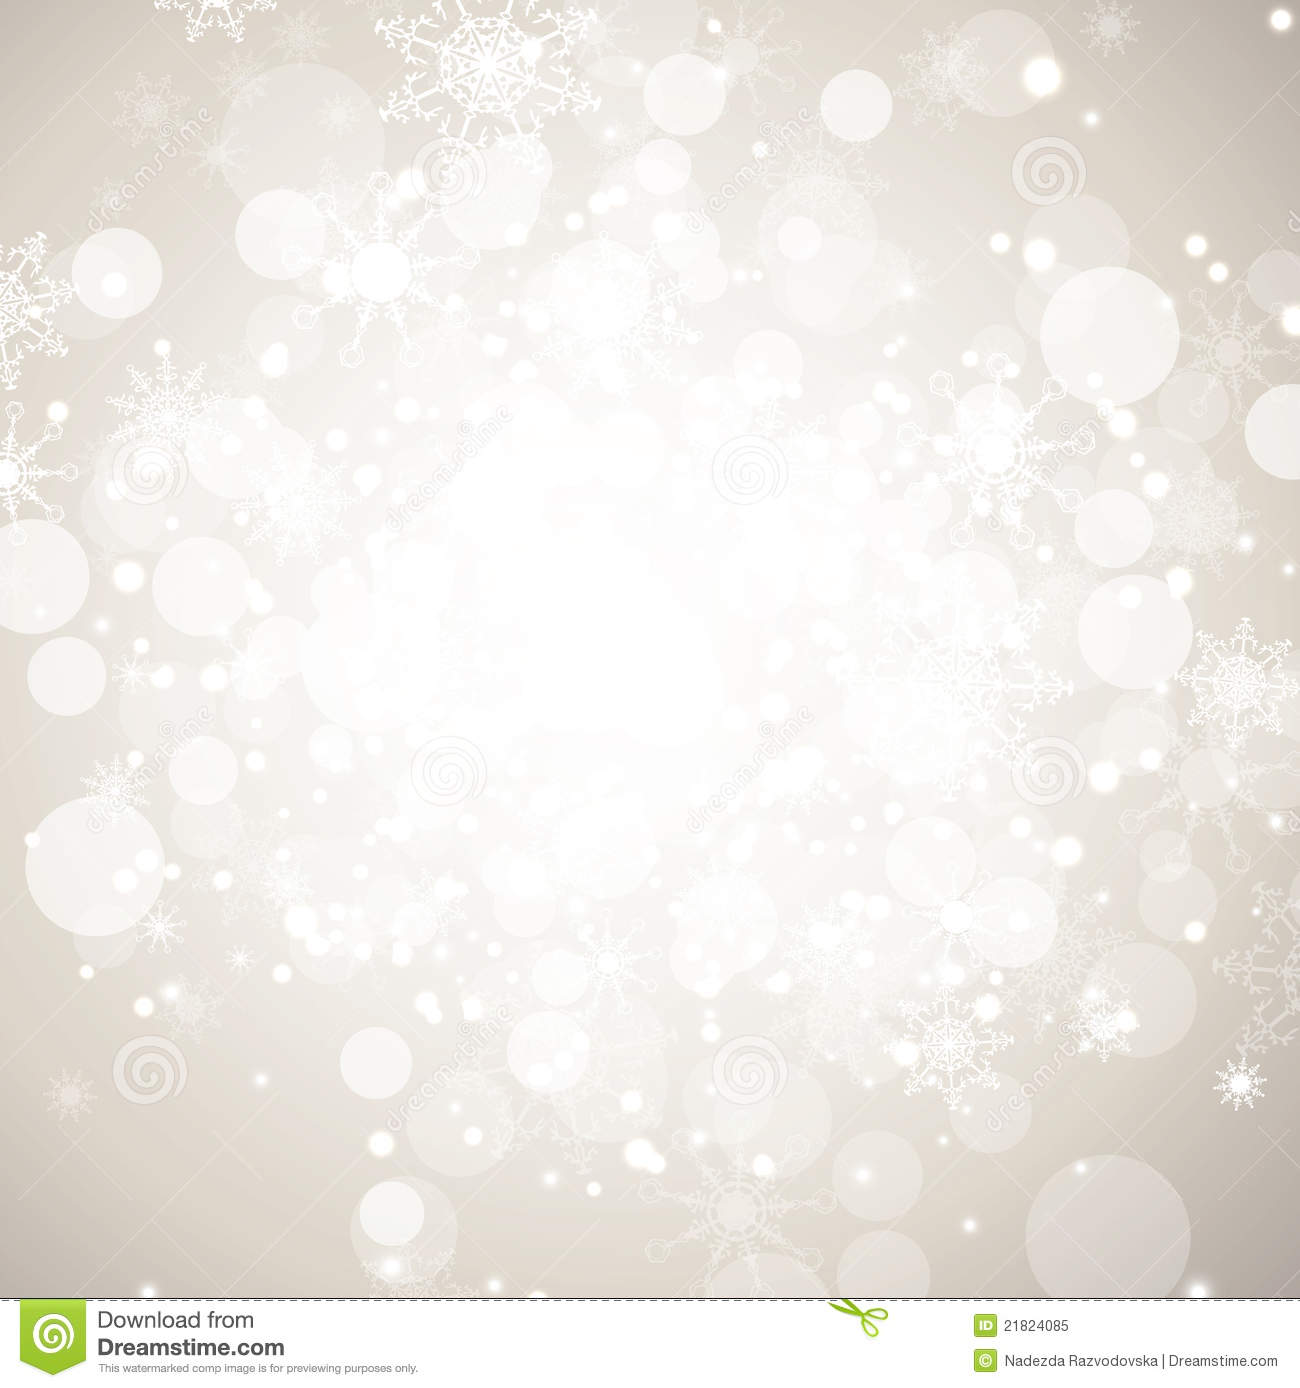 Christmas Wallpaper Snow Falling Winter Holiday Abstract Background Stock Vector